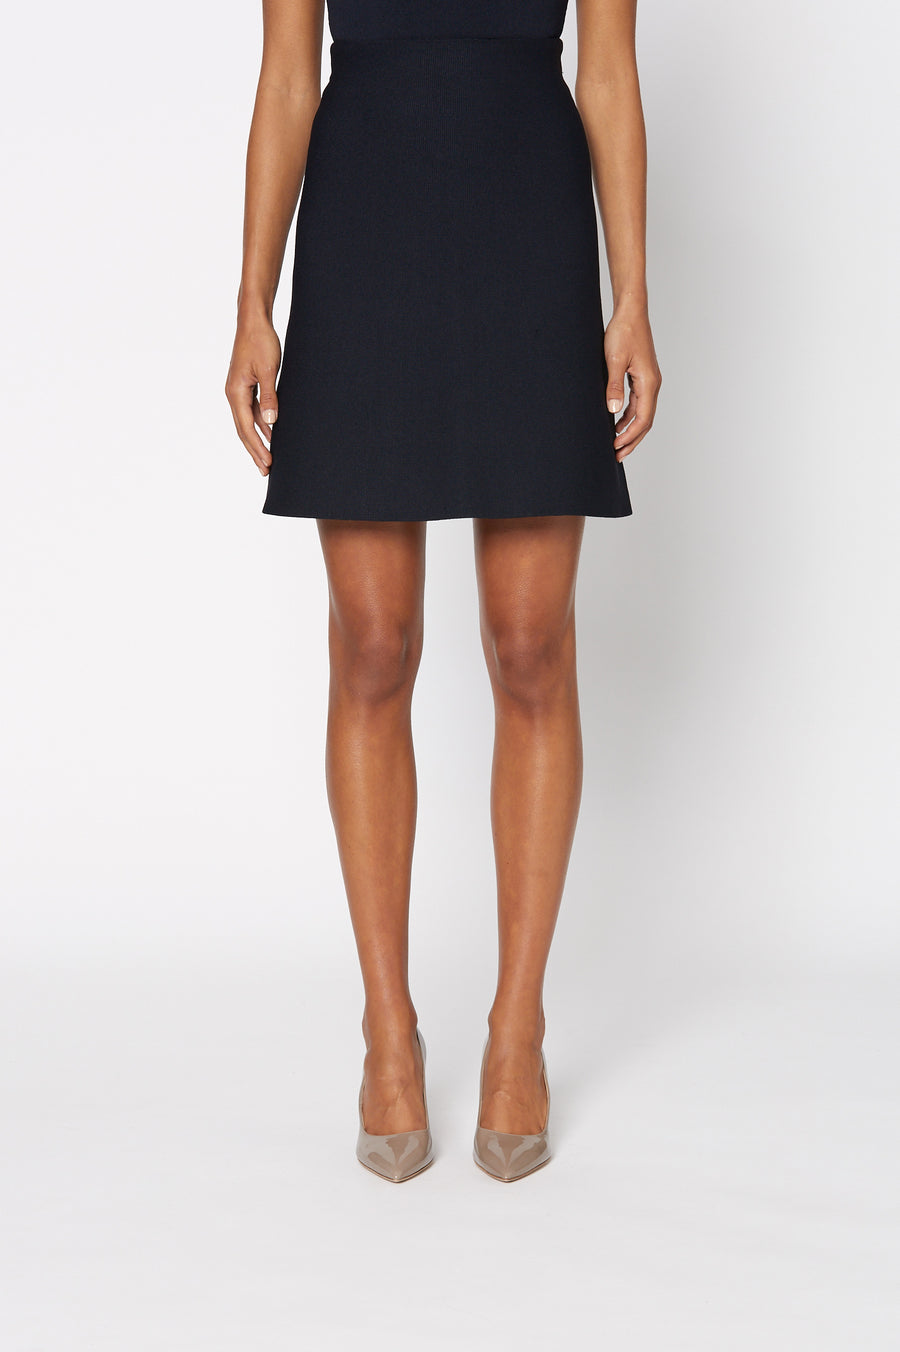 Crepe Knit A-Line Skirt is fitted at the waist, has an A-line body and sits above the knee, color Navy